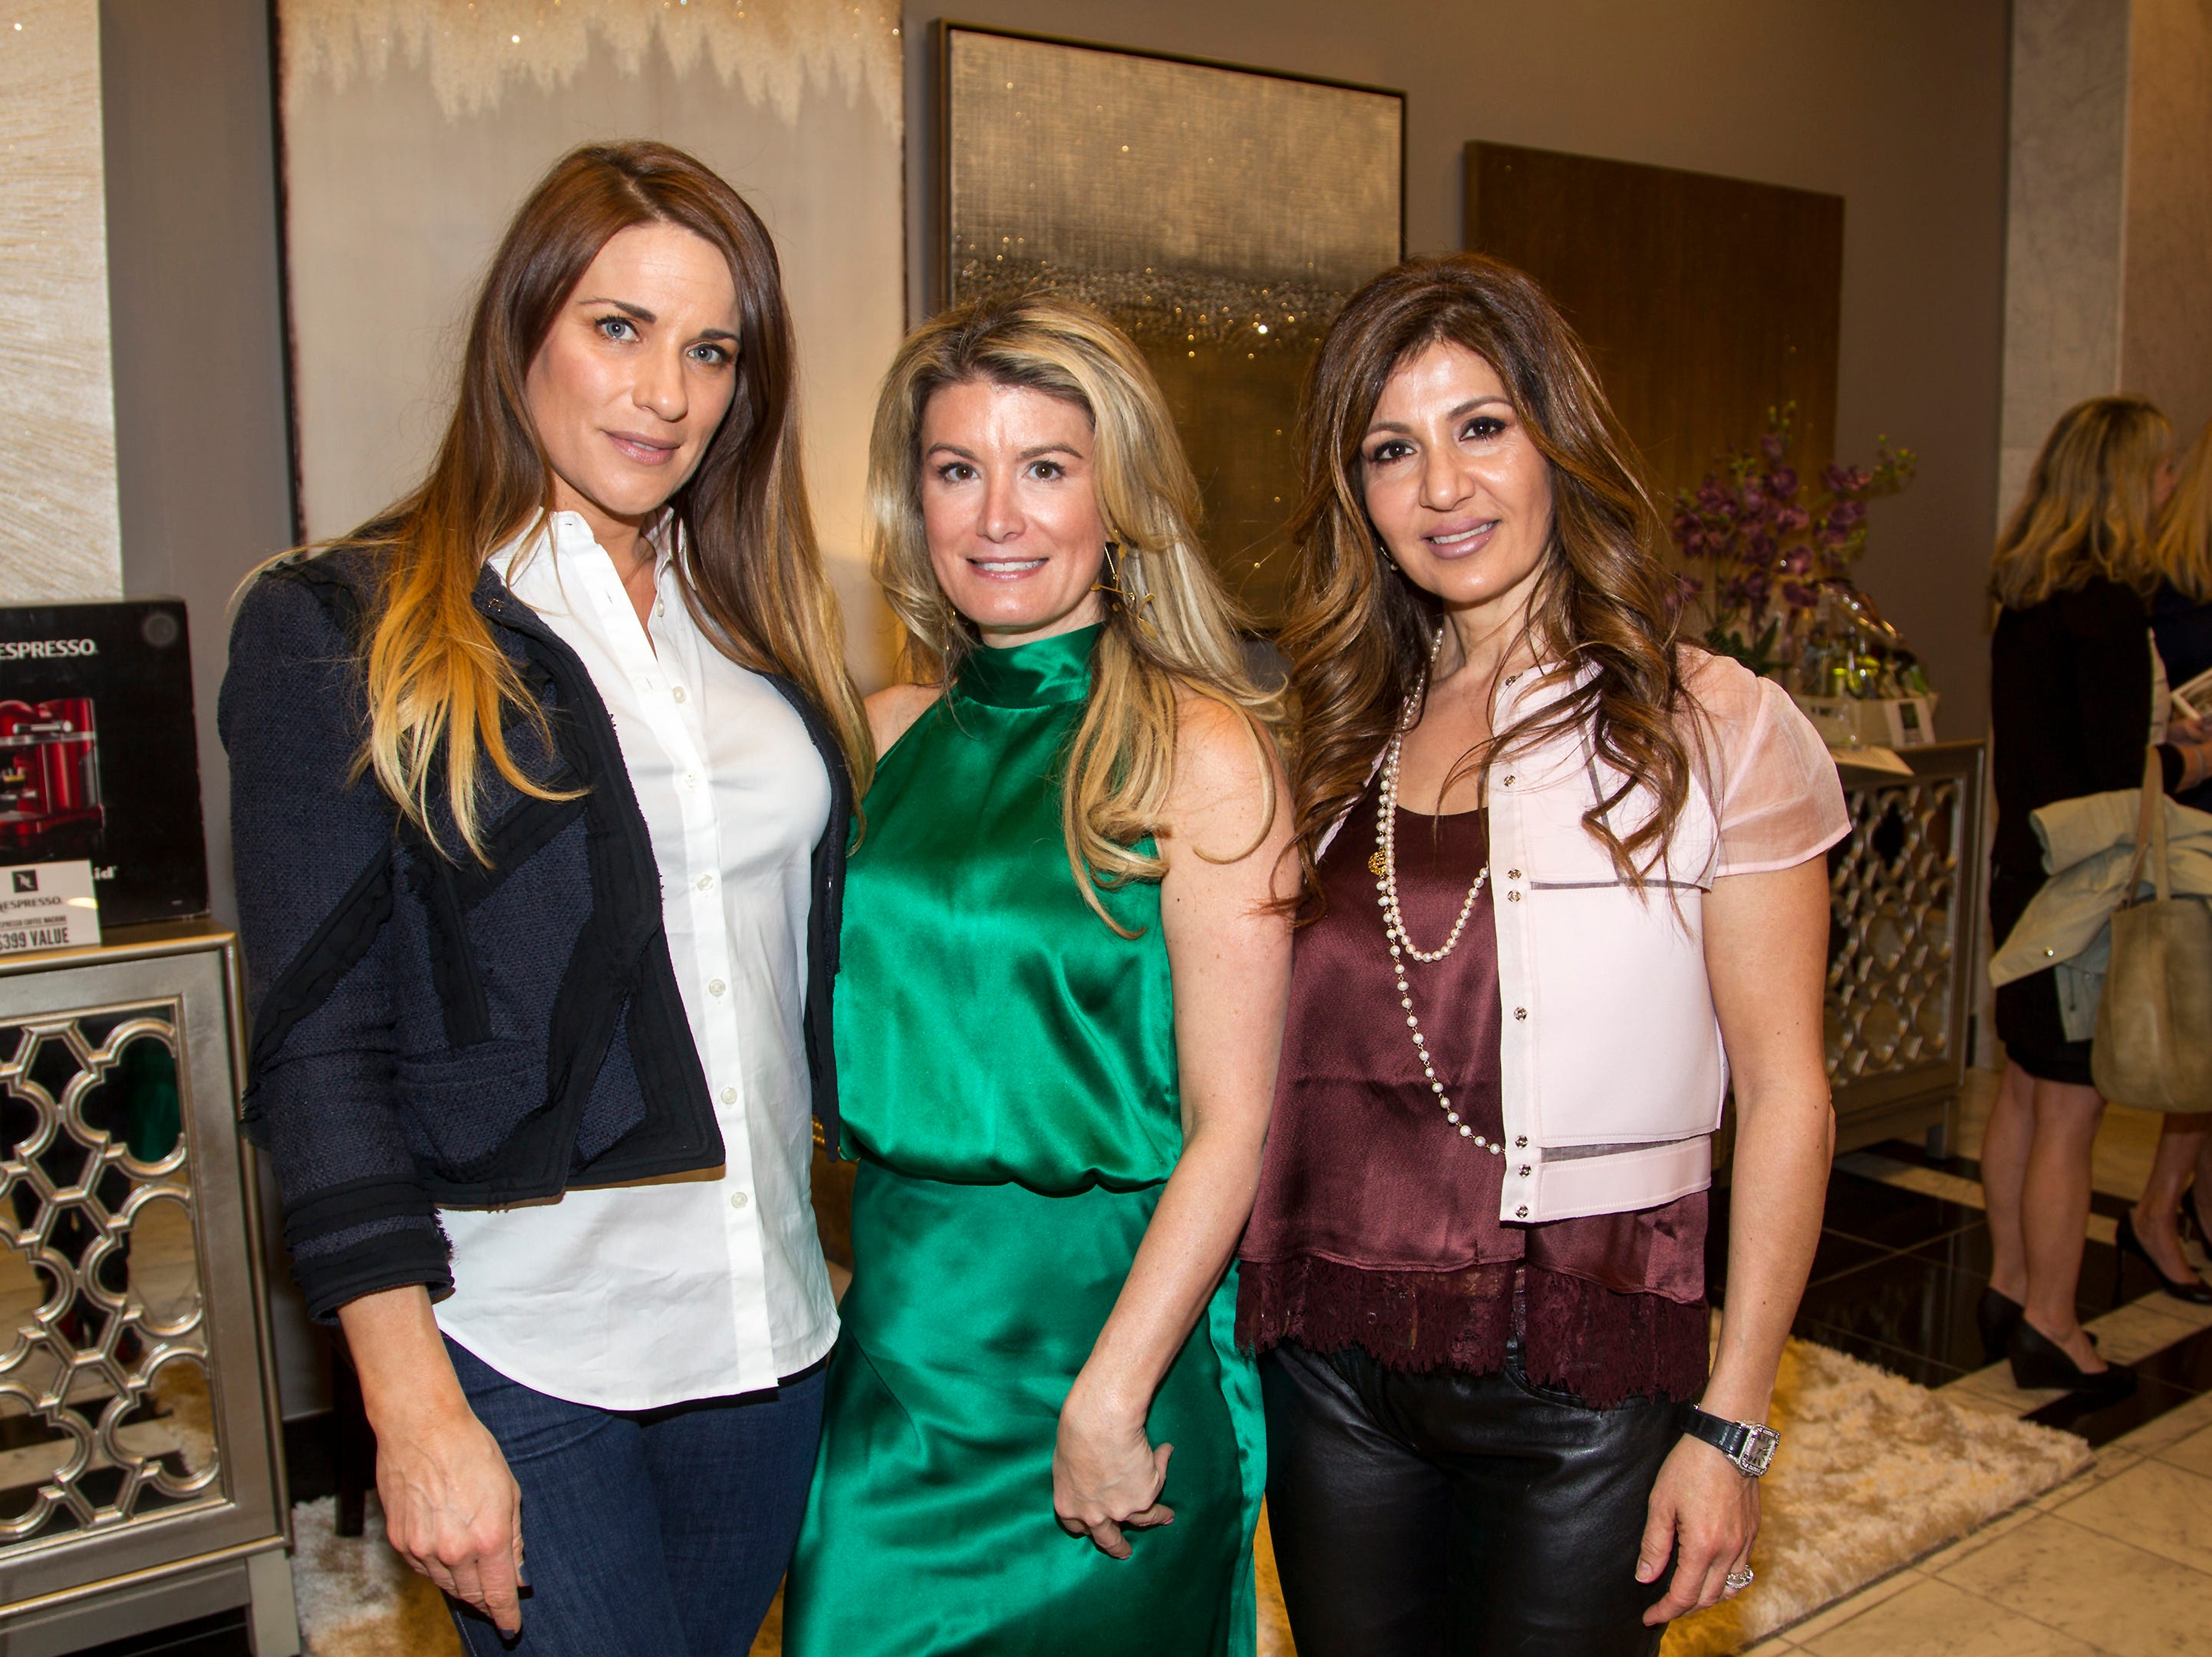 Sarah Hasson, Candace Kristin, Susan Koushagjian. Westfield Garden State Plaza held its Meet the Artist & Trend Show benefitting The Valley Hospital Auxillary Saddle River Branch. 04/03/2019